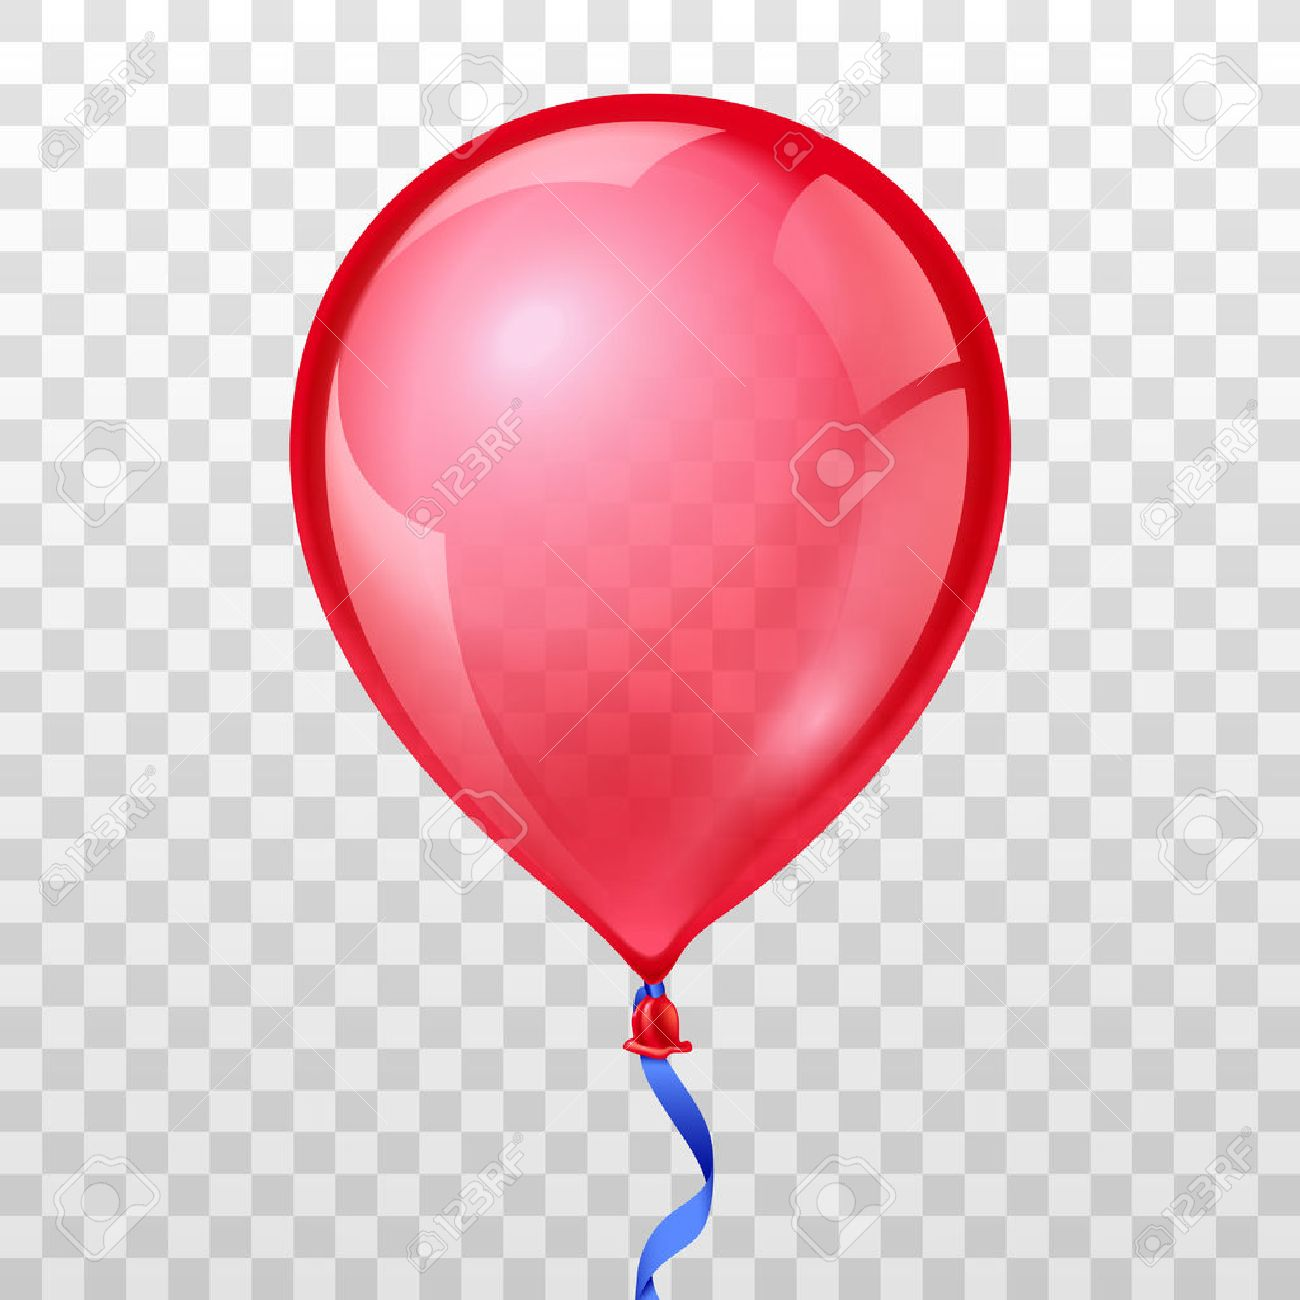 Realistic red balloon on transparent checkered background. Balloon air birthday, helium balloon, moving balloon inflatable, Vector illustration - 56432666